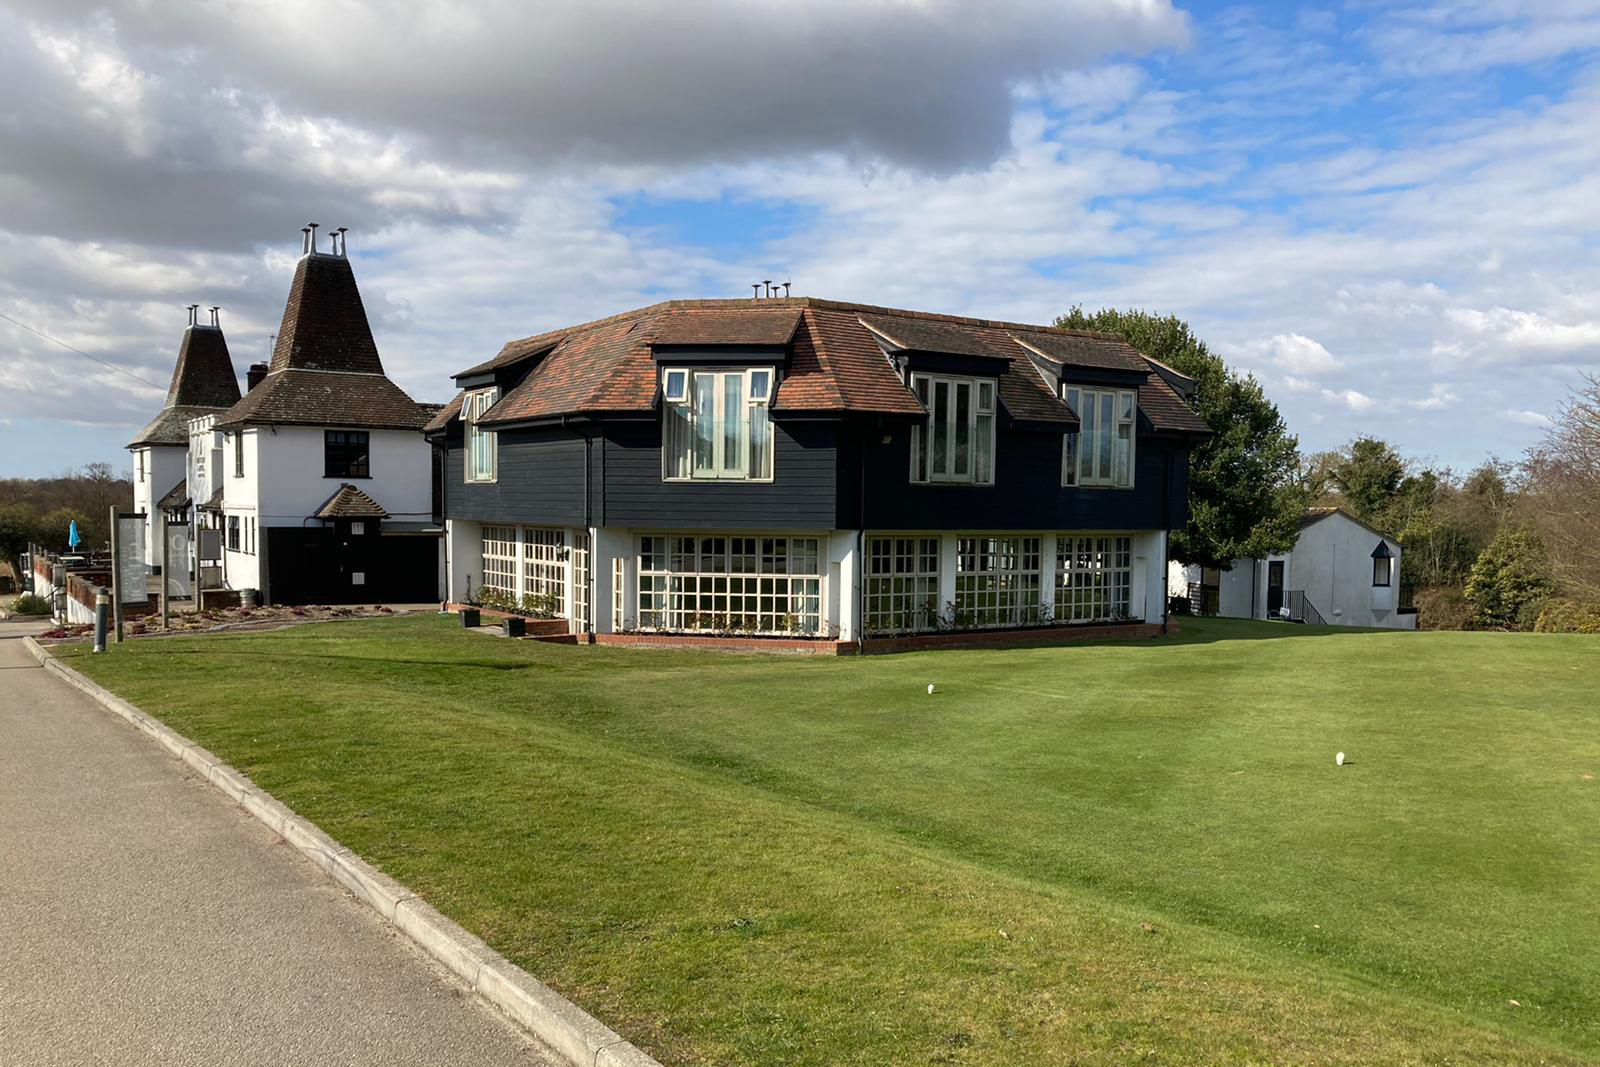 ALPHA'S BOILERS THE SWEETSPOT FOR LUXURY GOLF CLUB